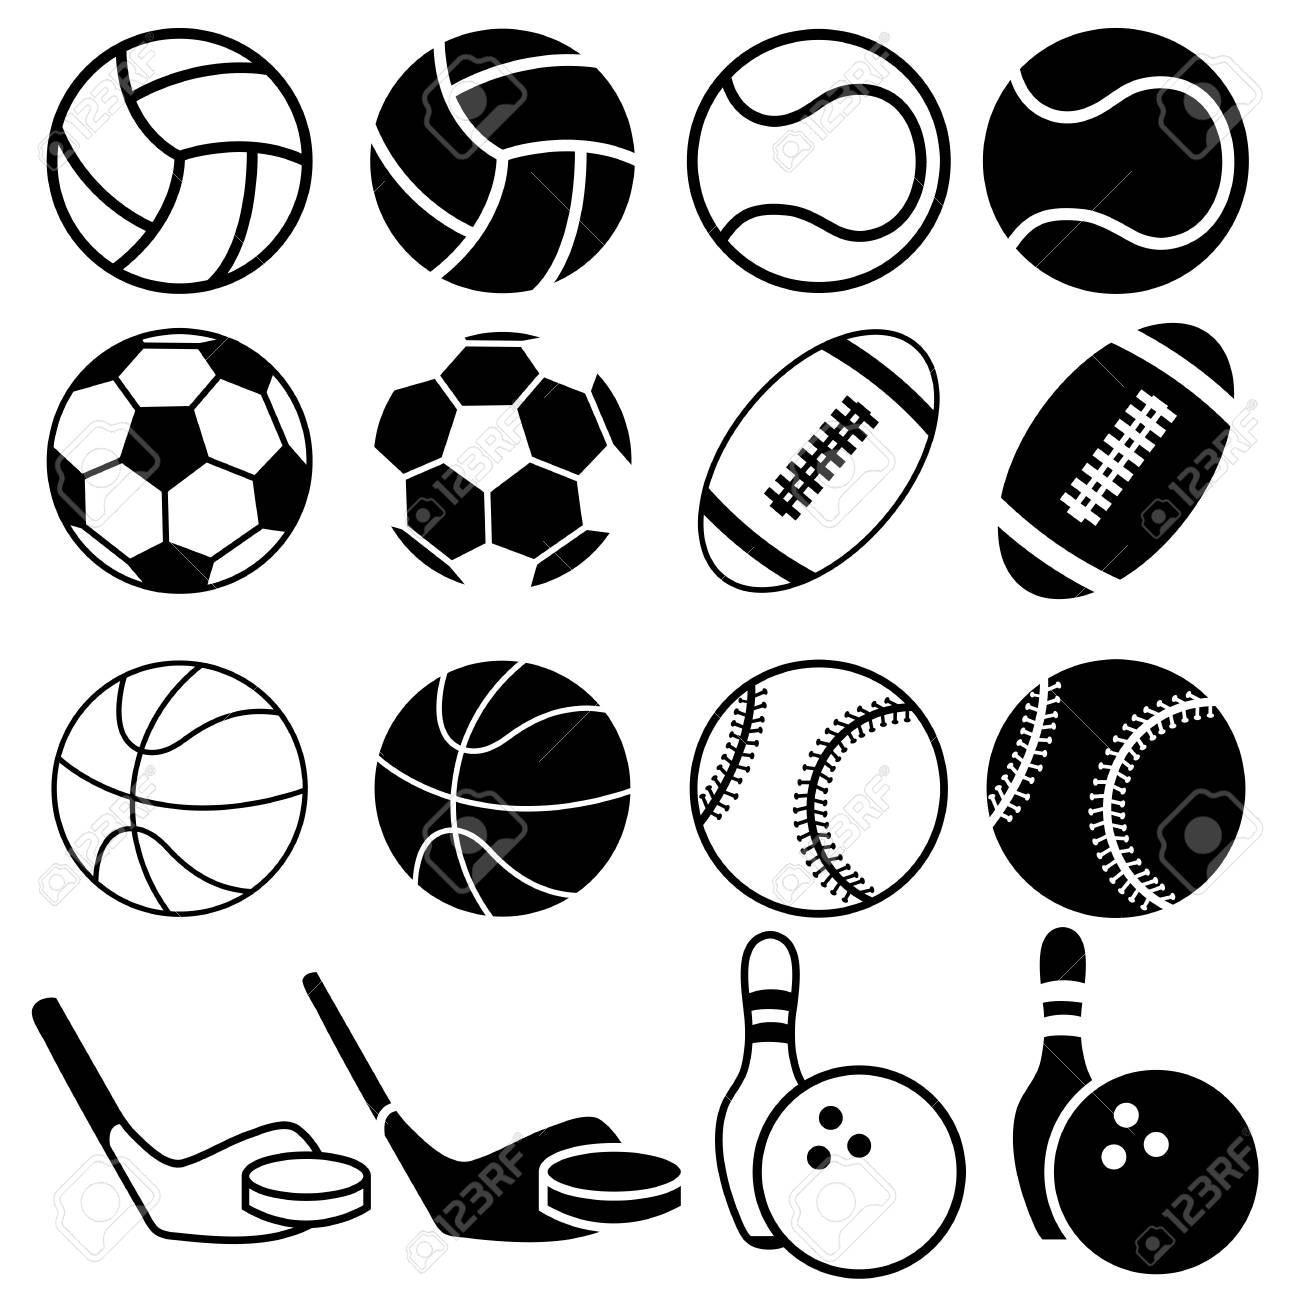 Set Of Black And White Sports Balls Icons Vector Illustration Royalty Free Cliparts Vectors And Stock Illustration Image 58721010